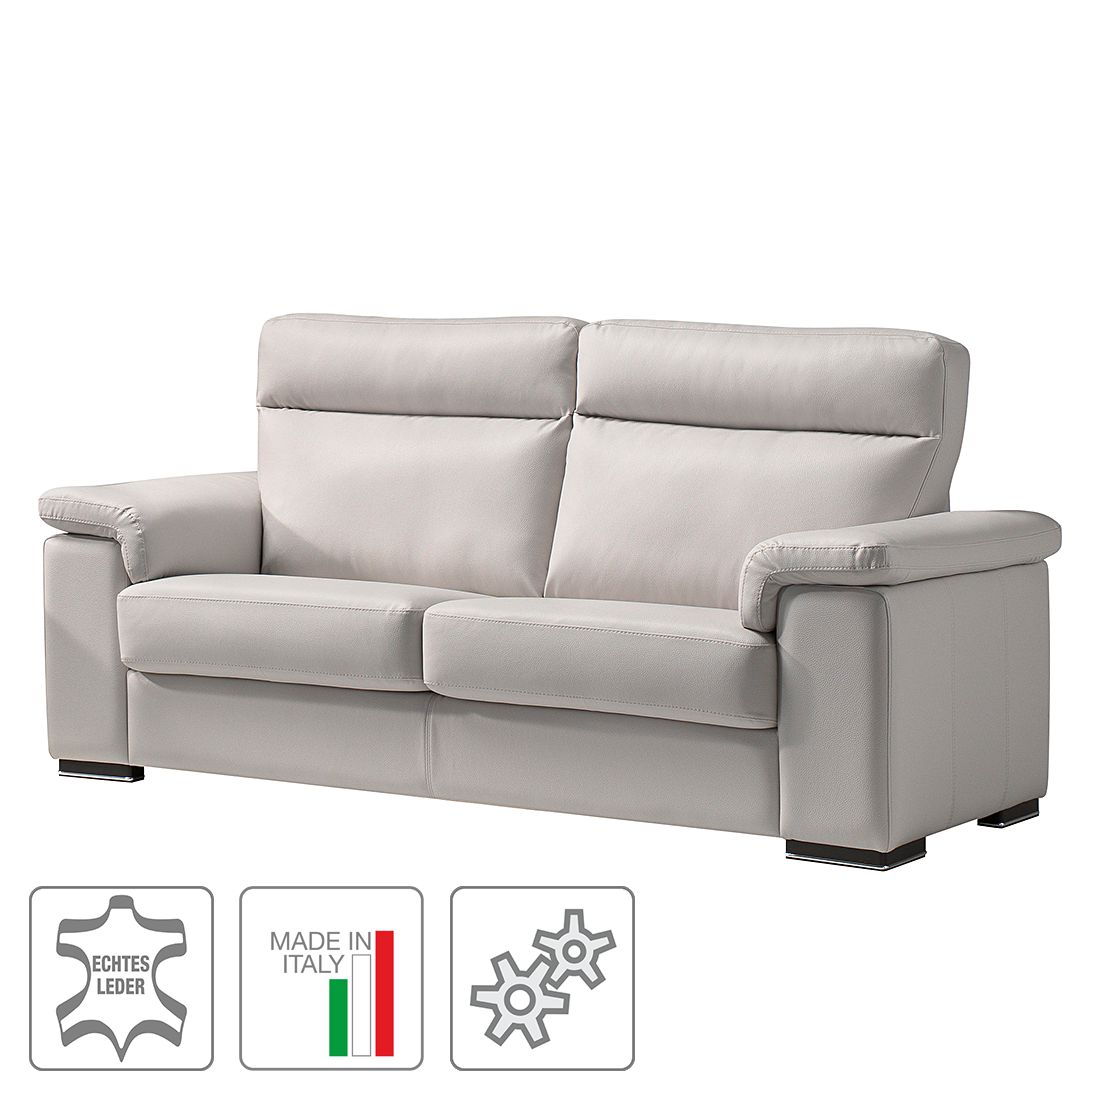 sofa babylon 2 5 sitzer echtleder mit relaxfunktion wei trend italiano online kaufen. Black Bedroom Furniture Sets. Home Design Ideas